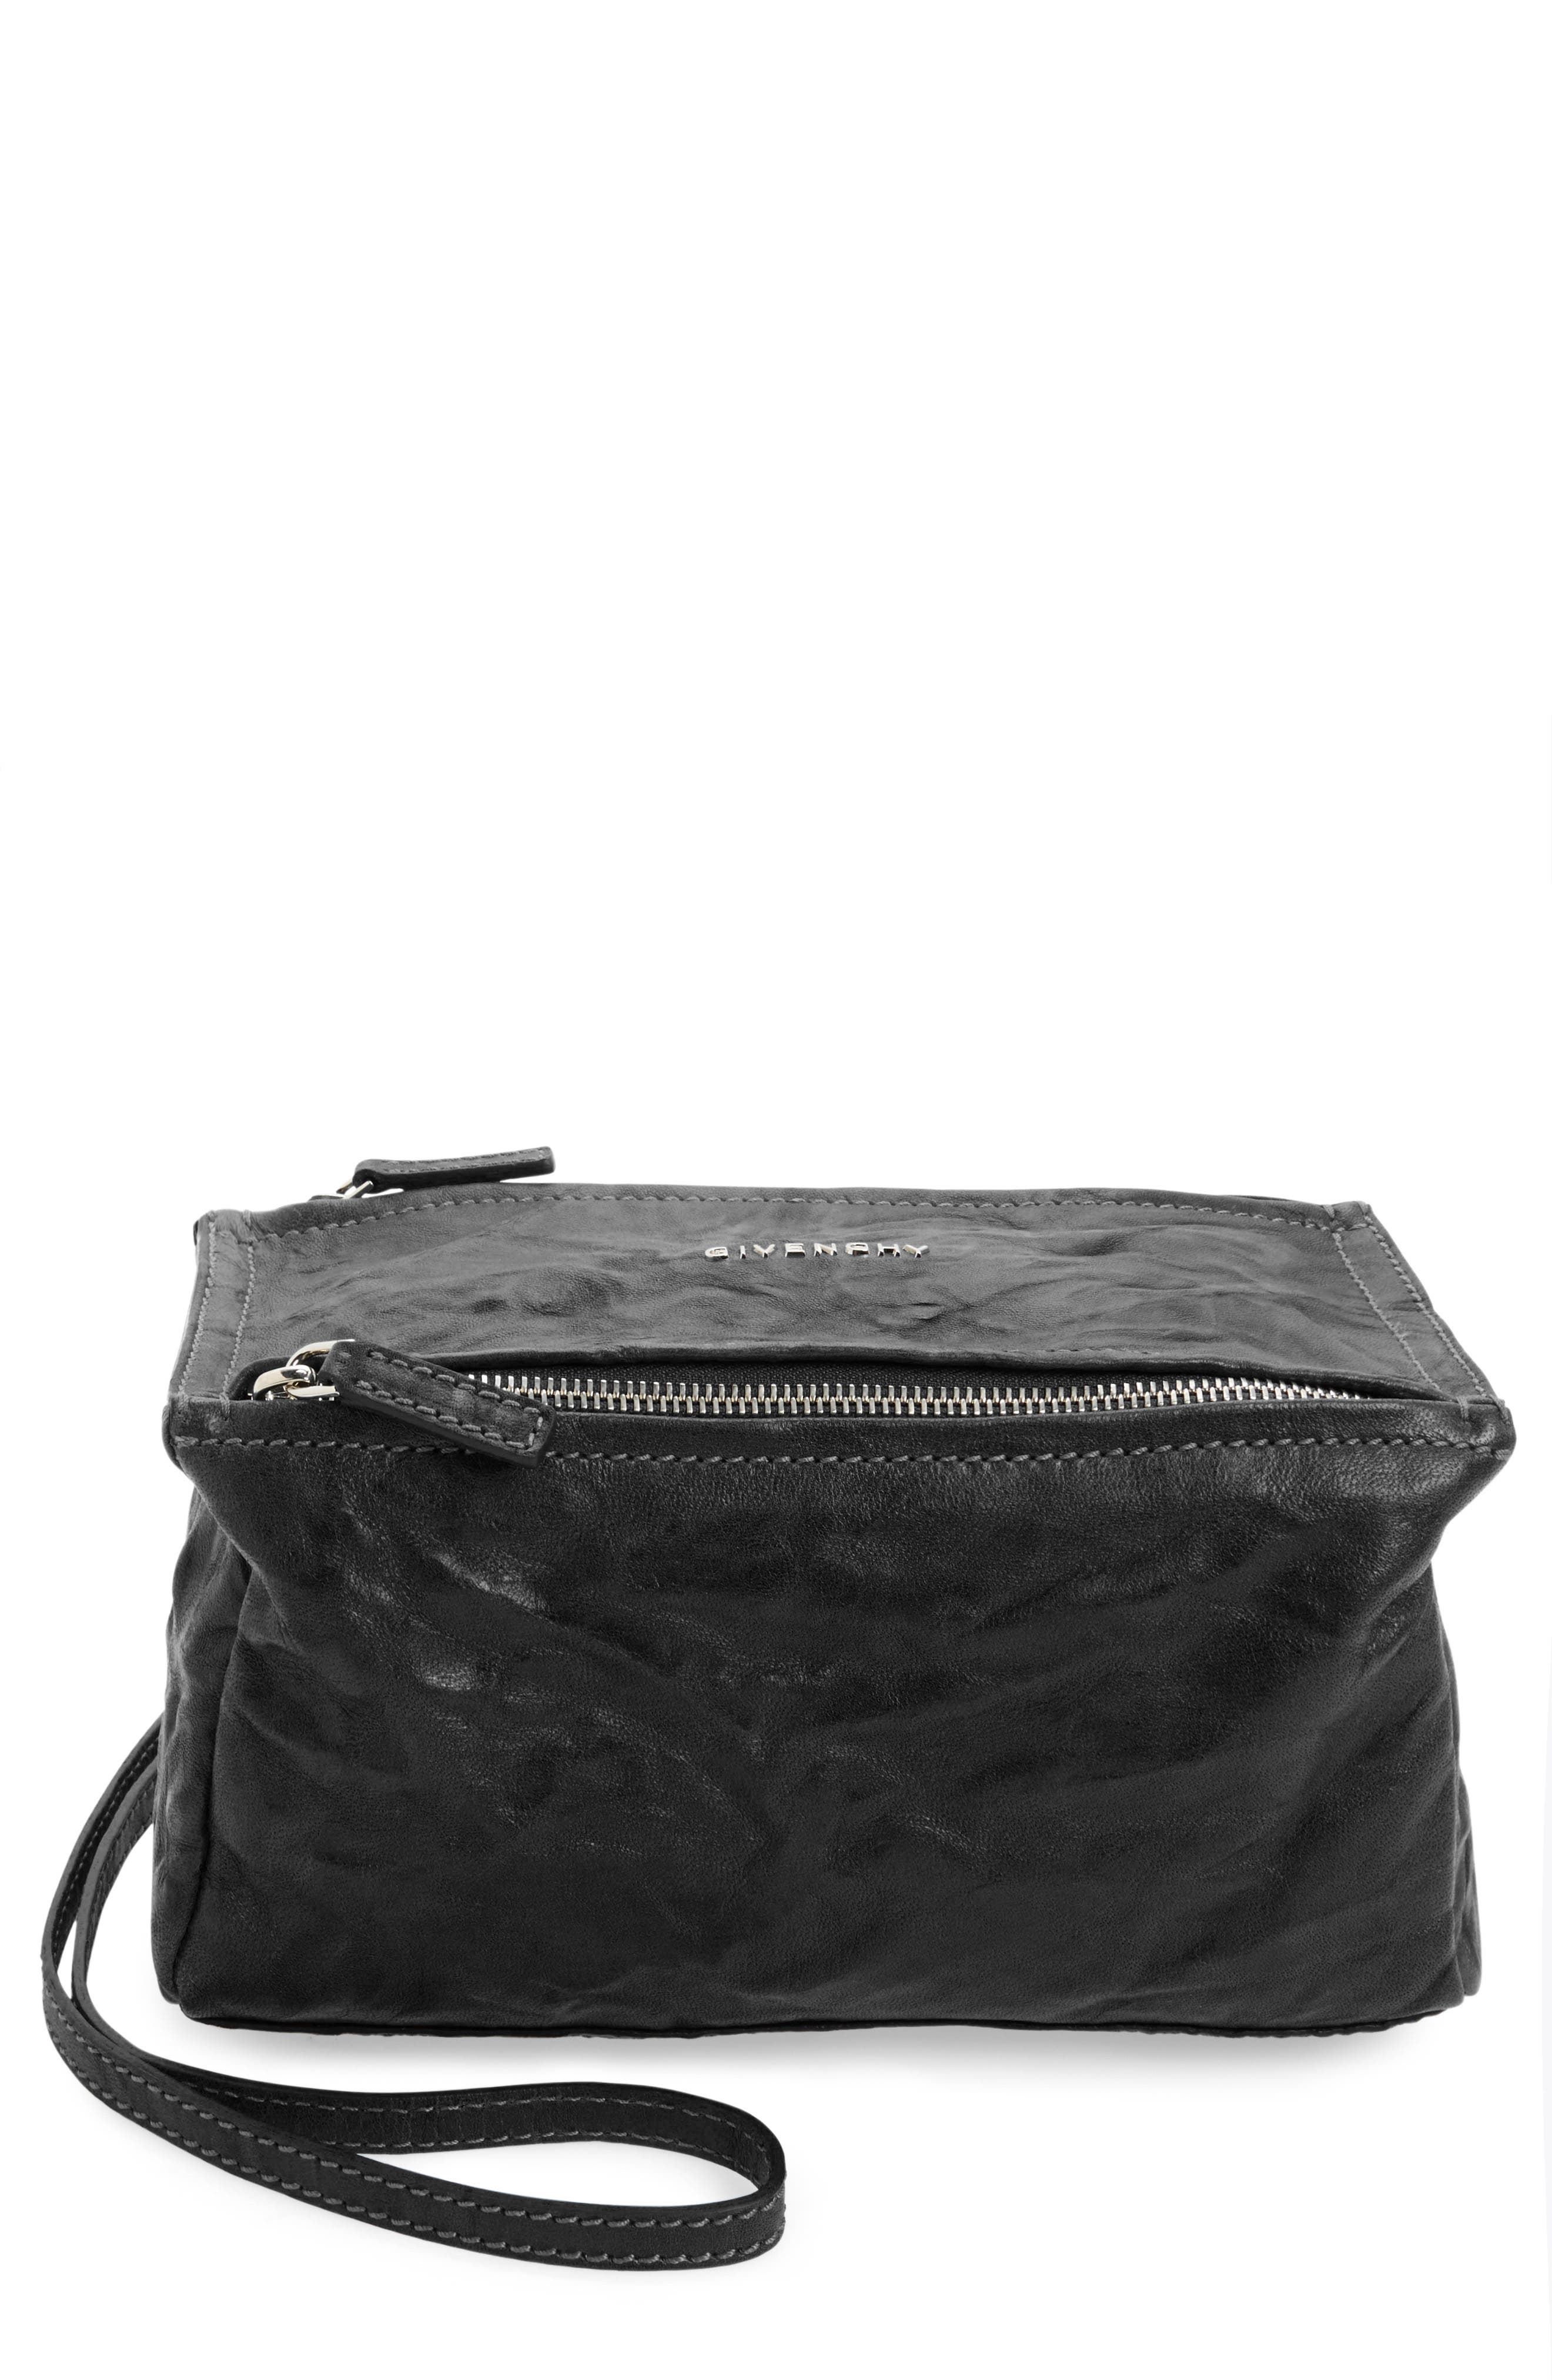 Givenchy 'Mini Pepe Pandora' Leather Shoulder Bag